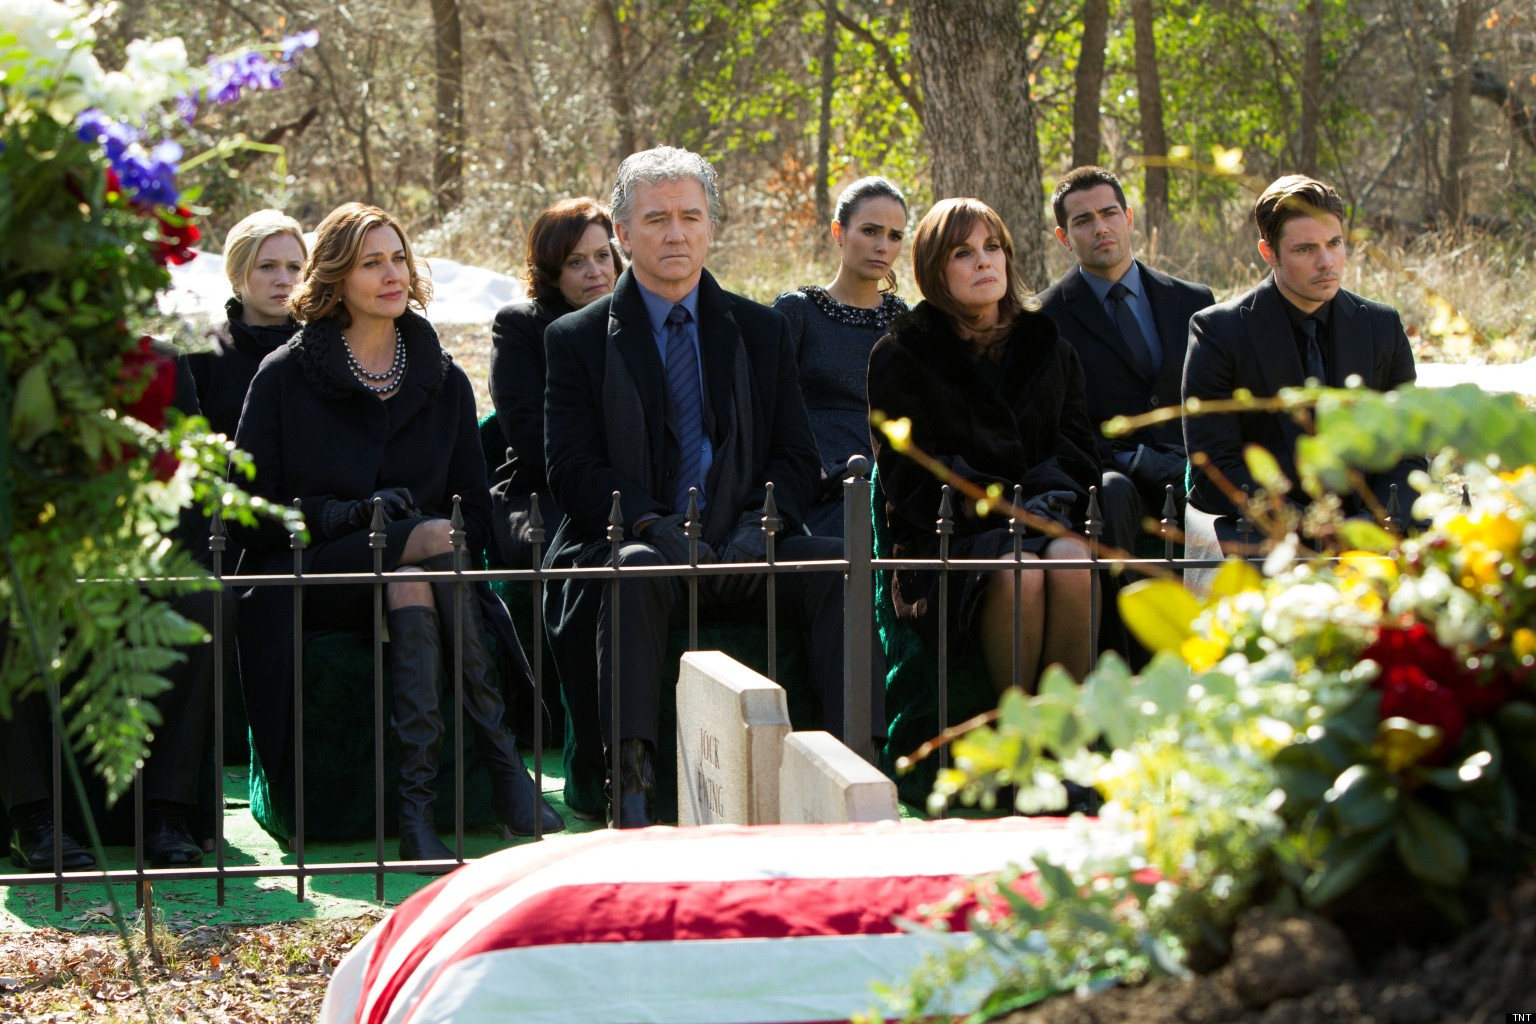 39 dallas 39 j r 39 s funeral depicts 39 real honest 39 mourning for larry hagman from the cast huffpost - Dallas tv show family tree ...